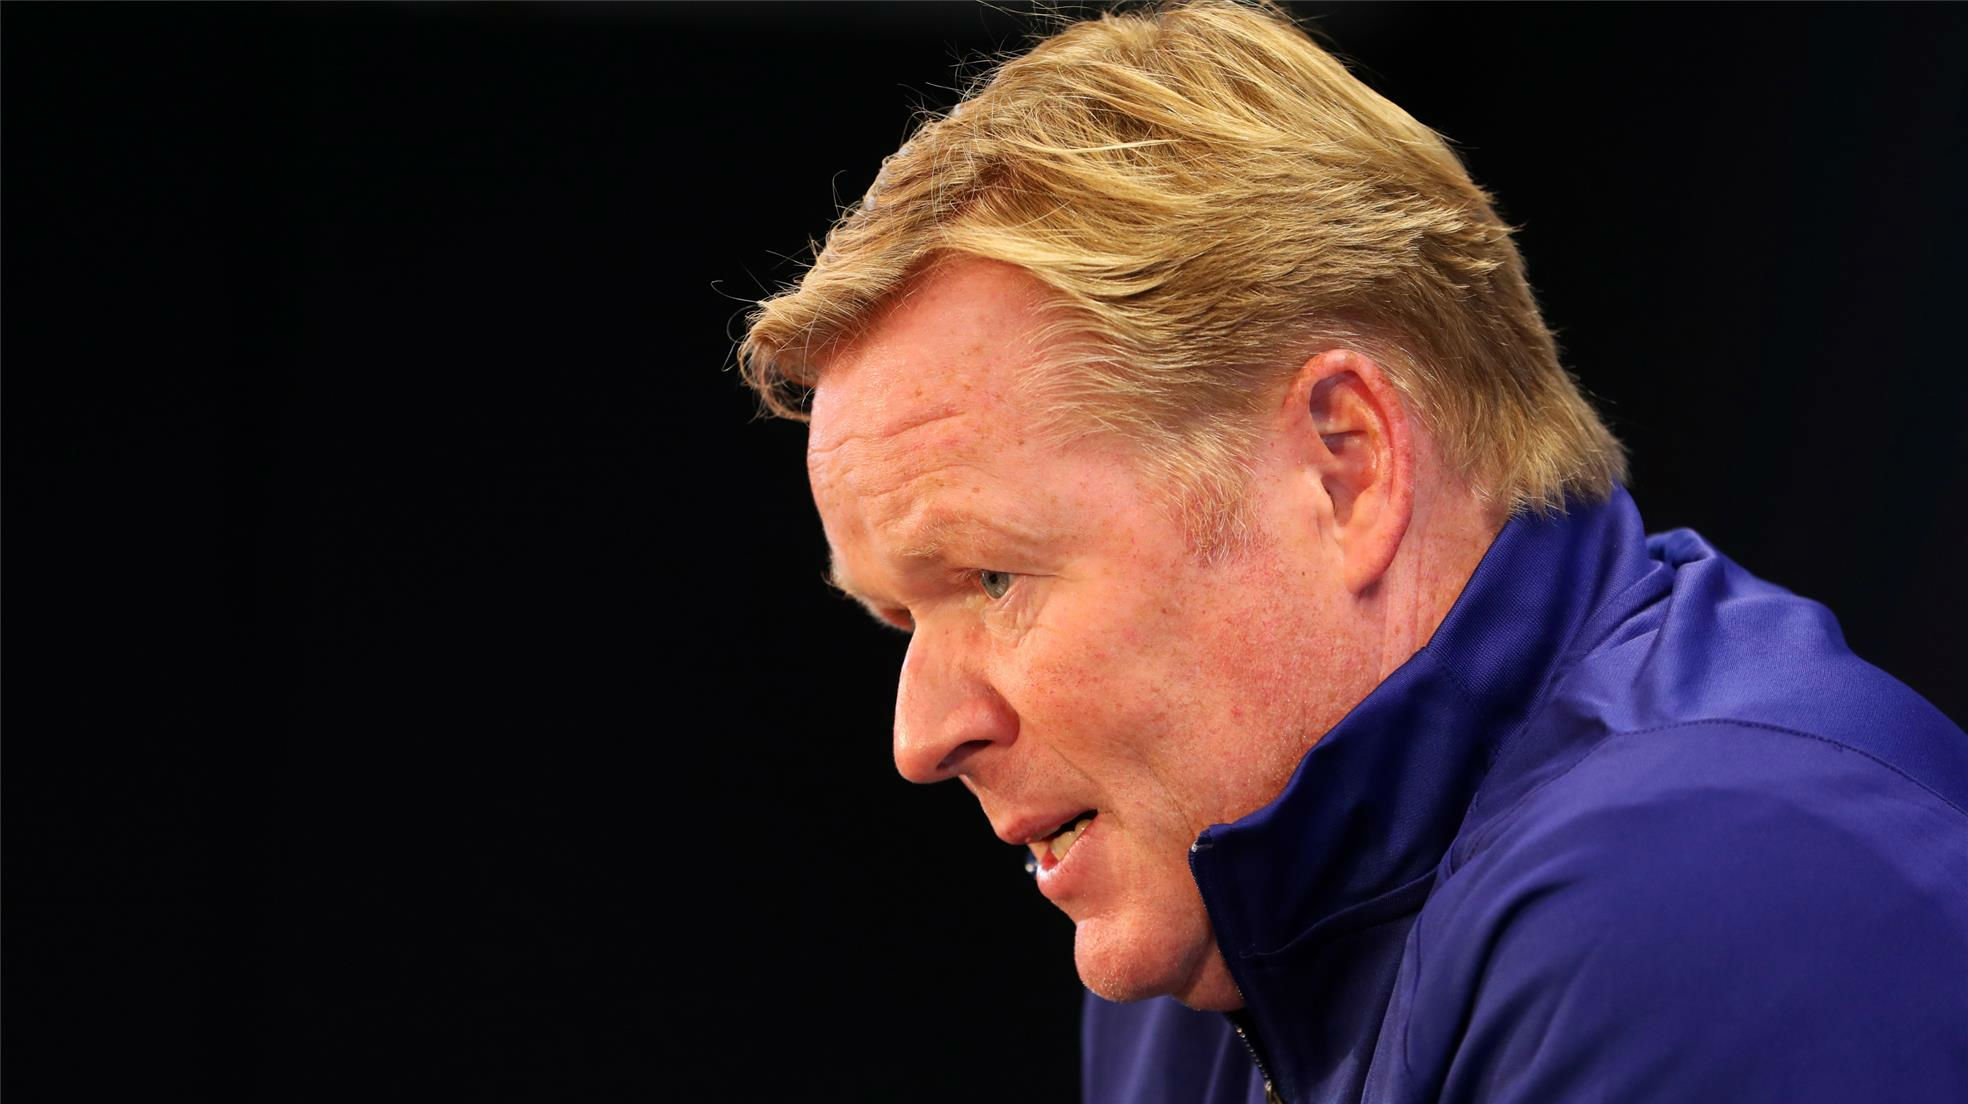 Koeman: No espero a un Madrid vulnerable